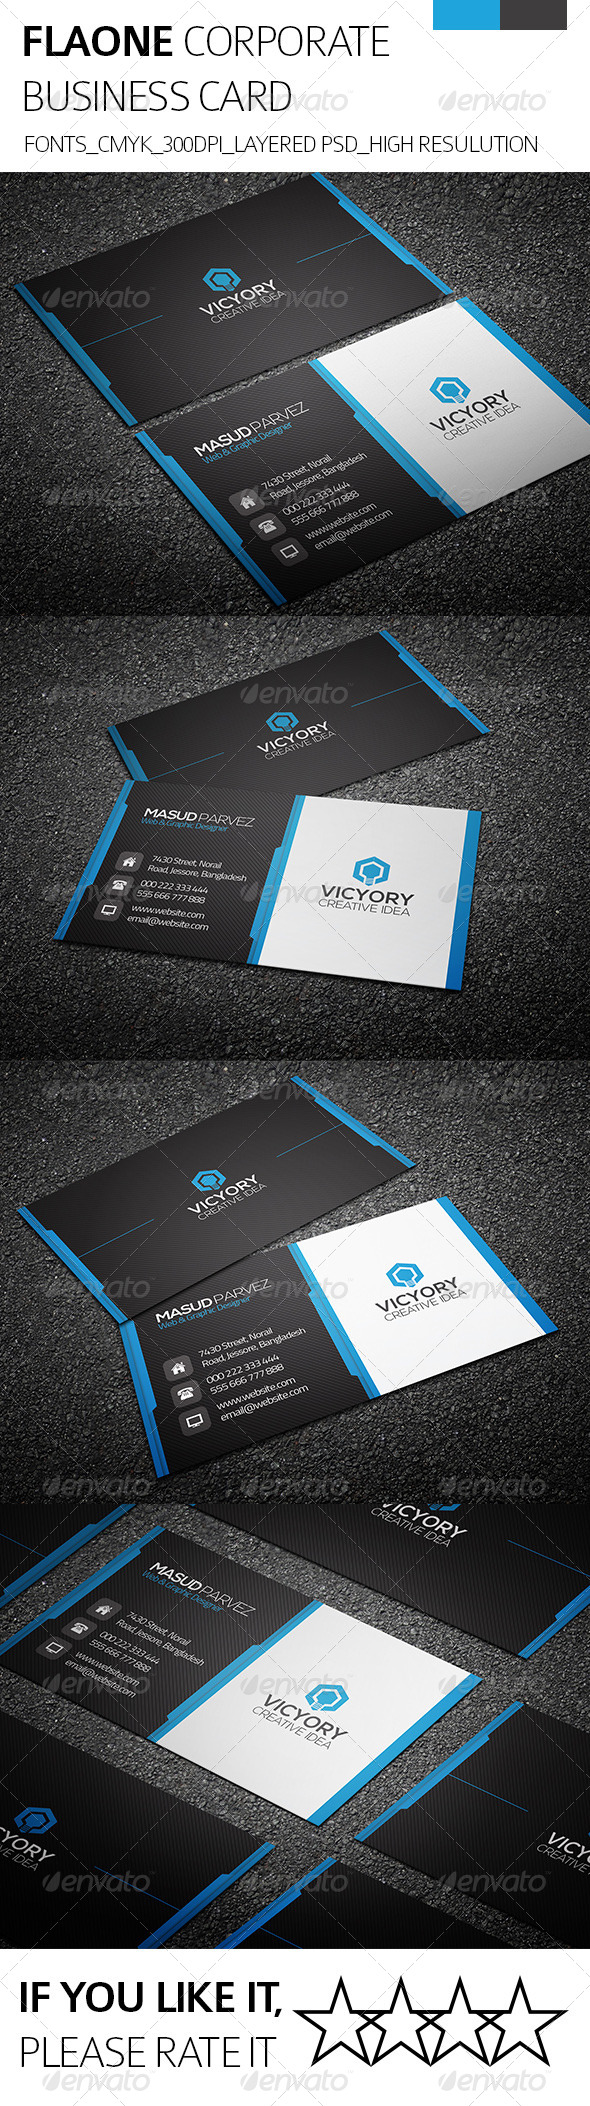 Flaone & Corporate Business Card - Corporate Business Cards